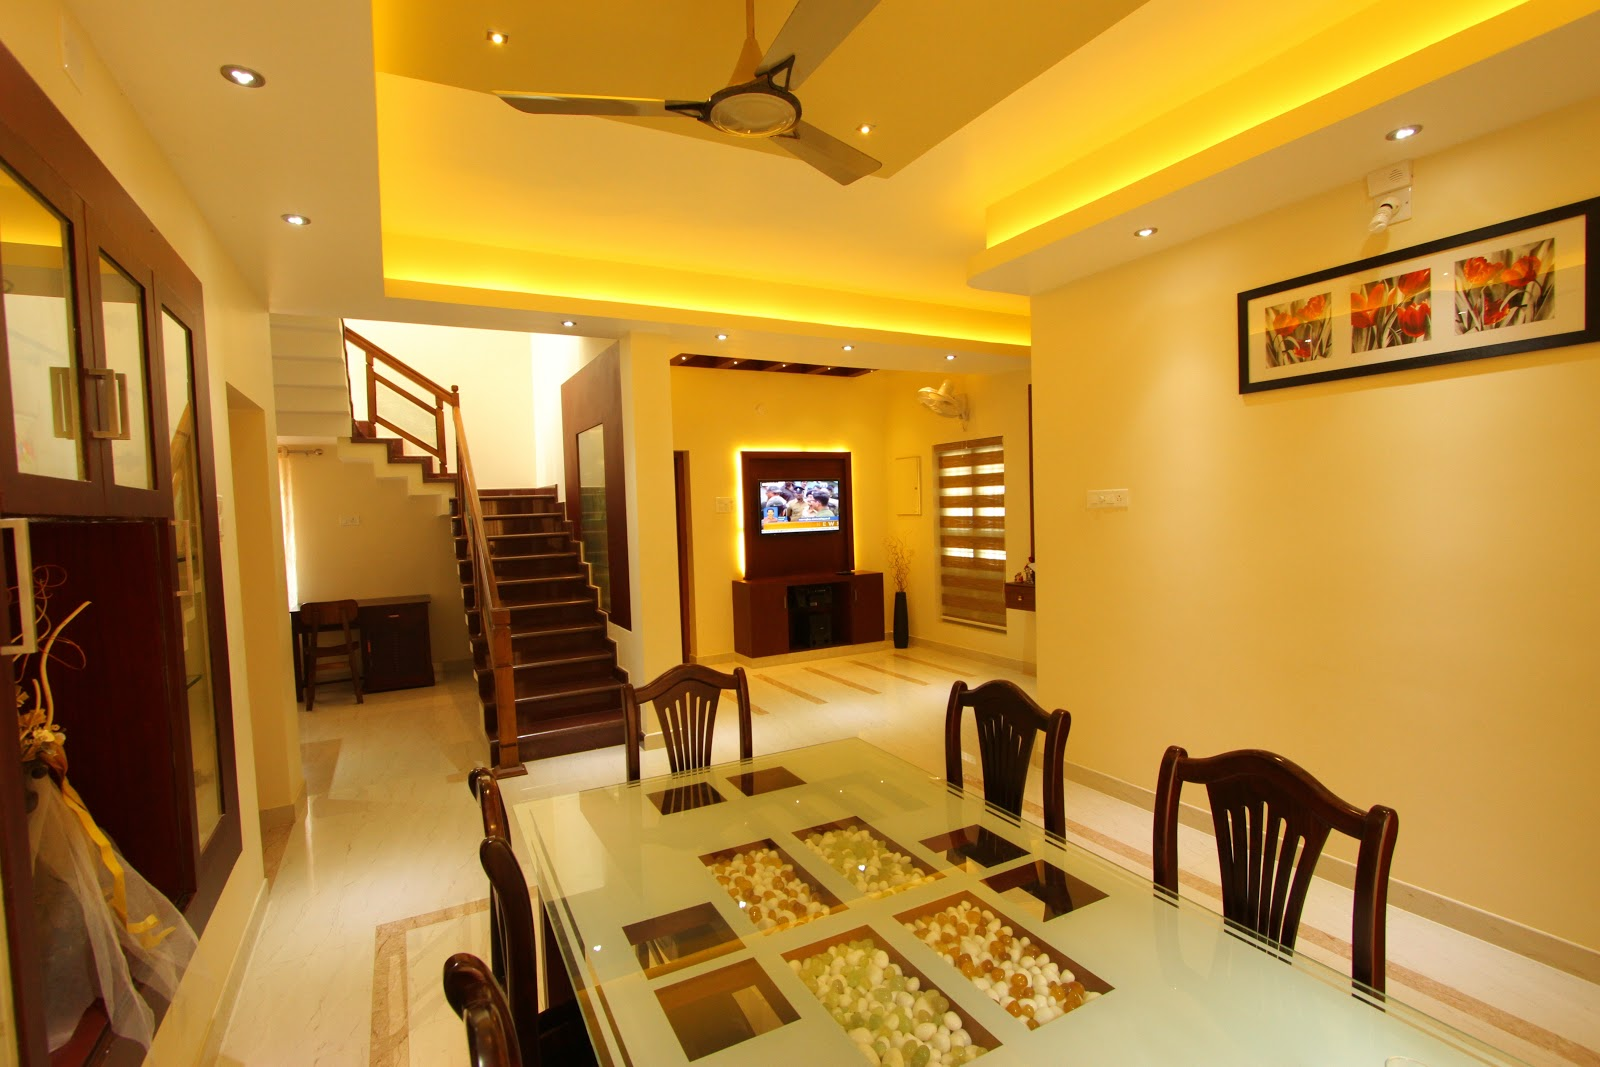 Shilpakala interiors award winning home interior design for As interior design